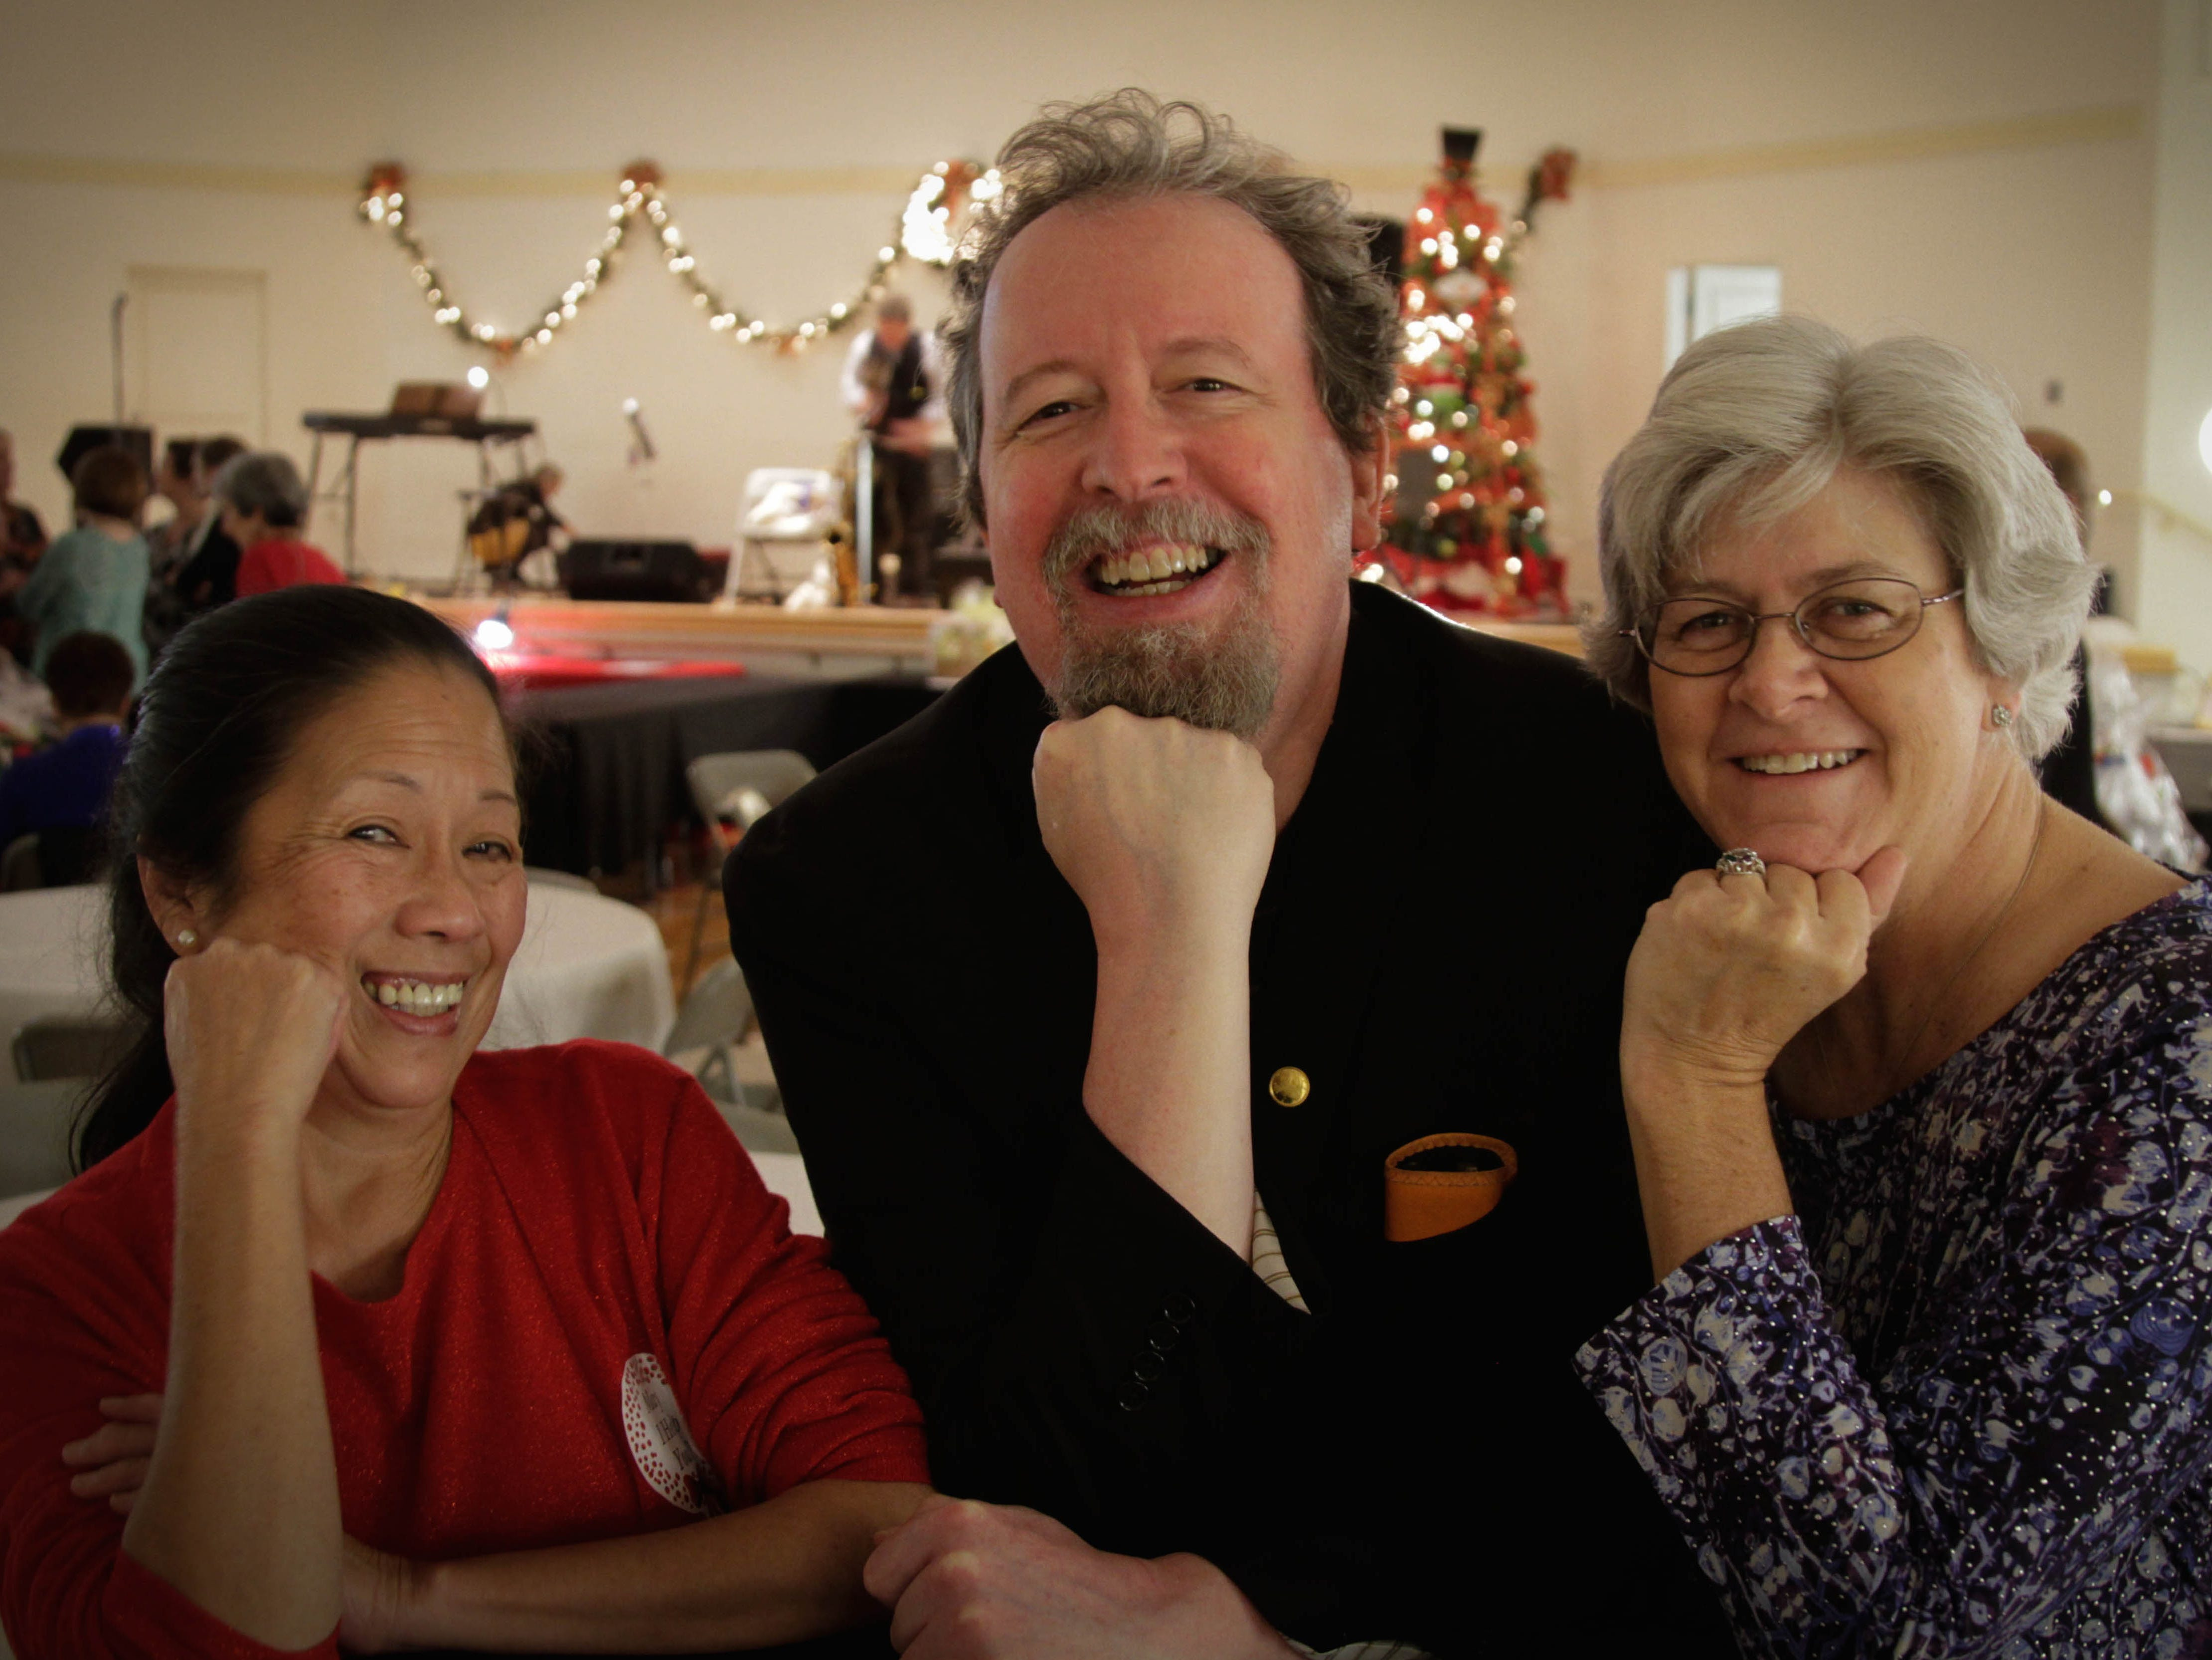 All smiles at Deck the Halls. From left, Aurora Hansen, Mark Hinson and Sheila Salyer.